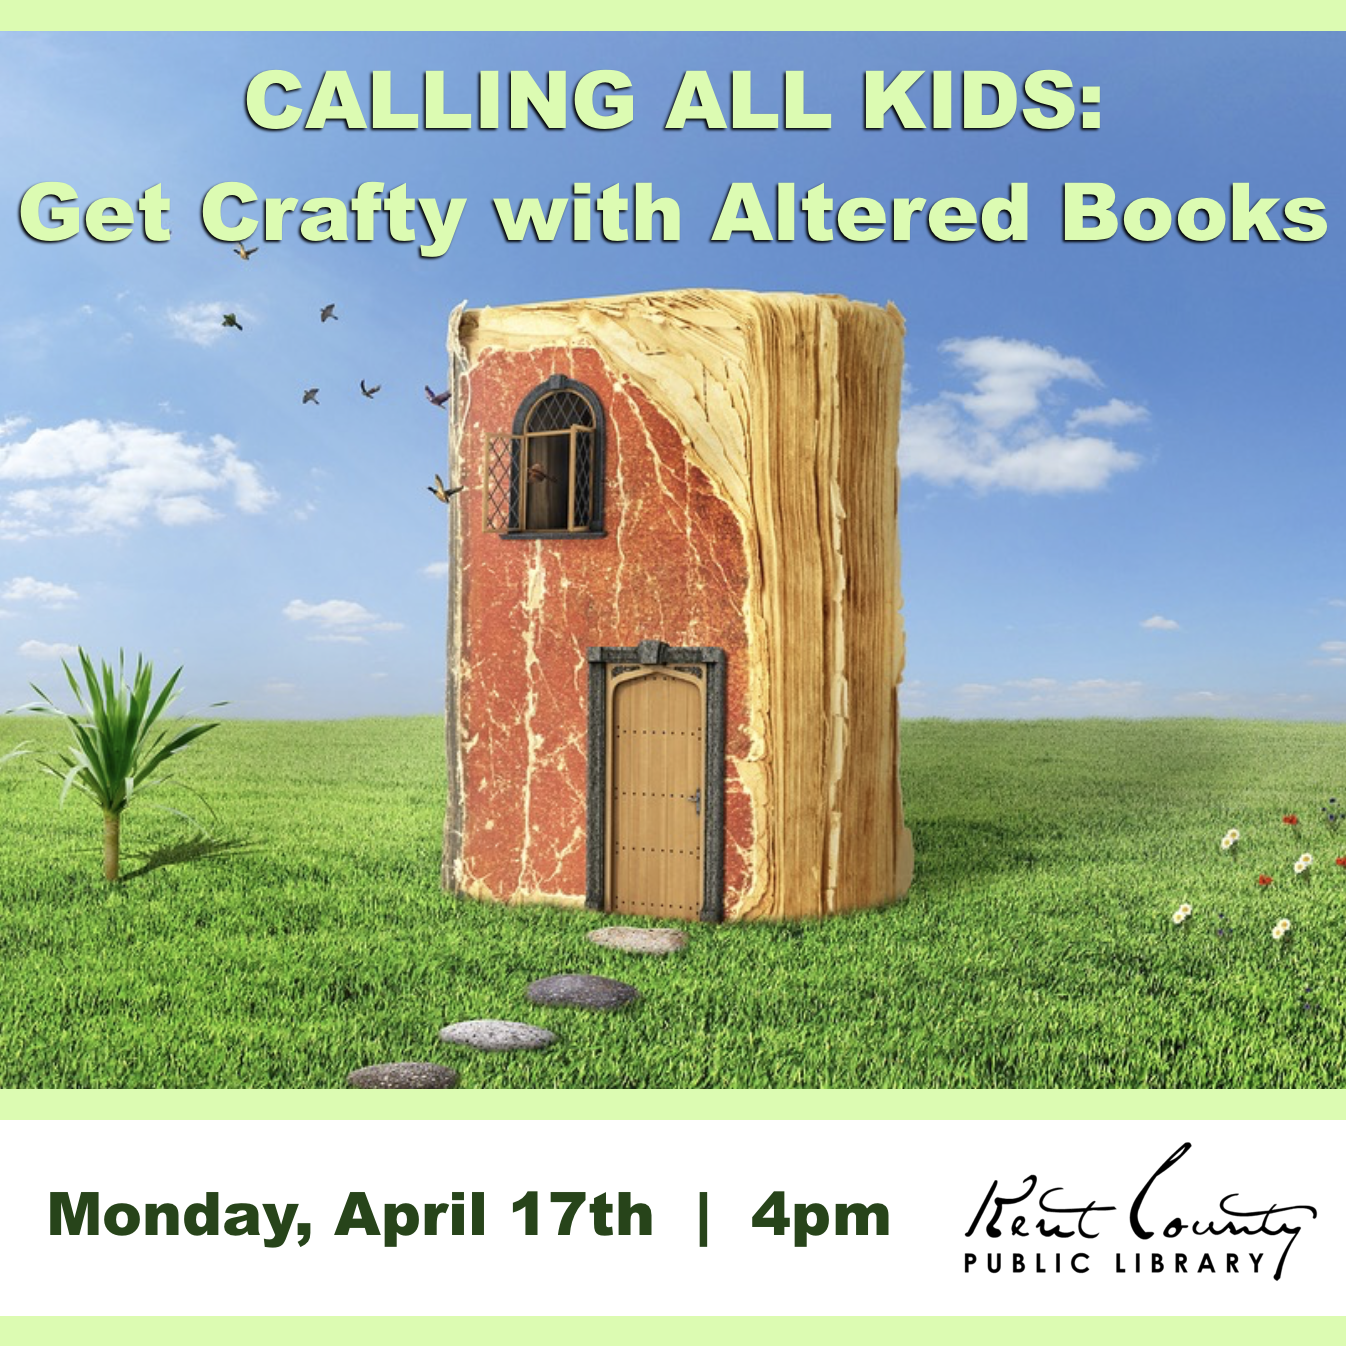 Let's Get Crafty with Altered Books